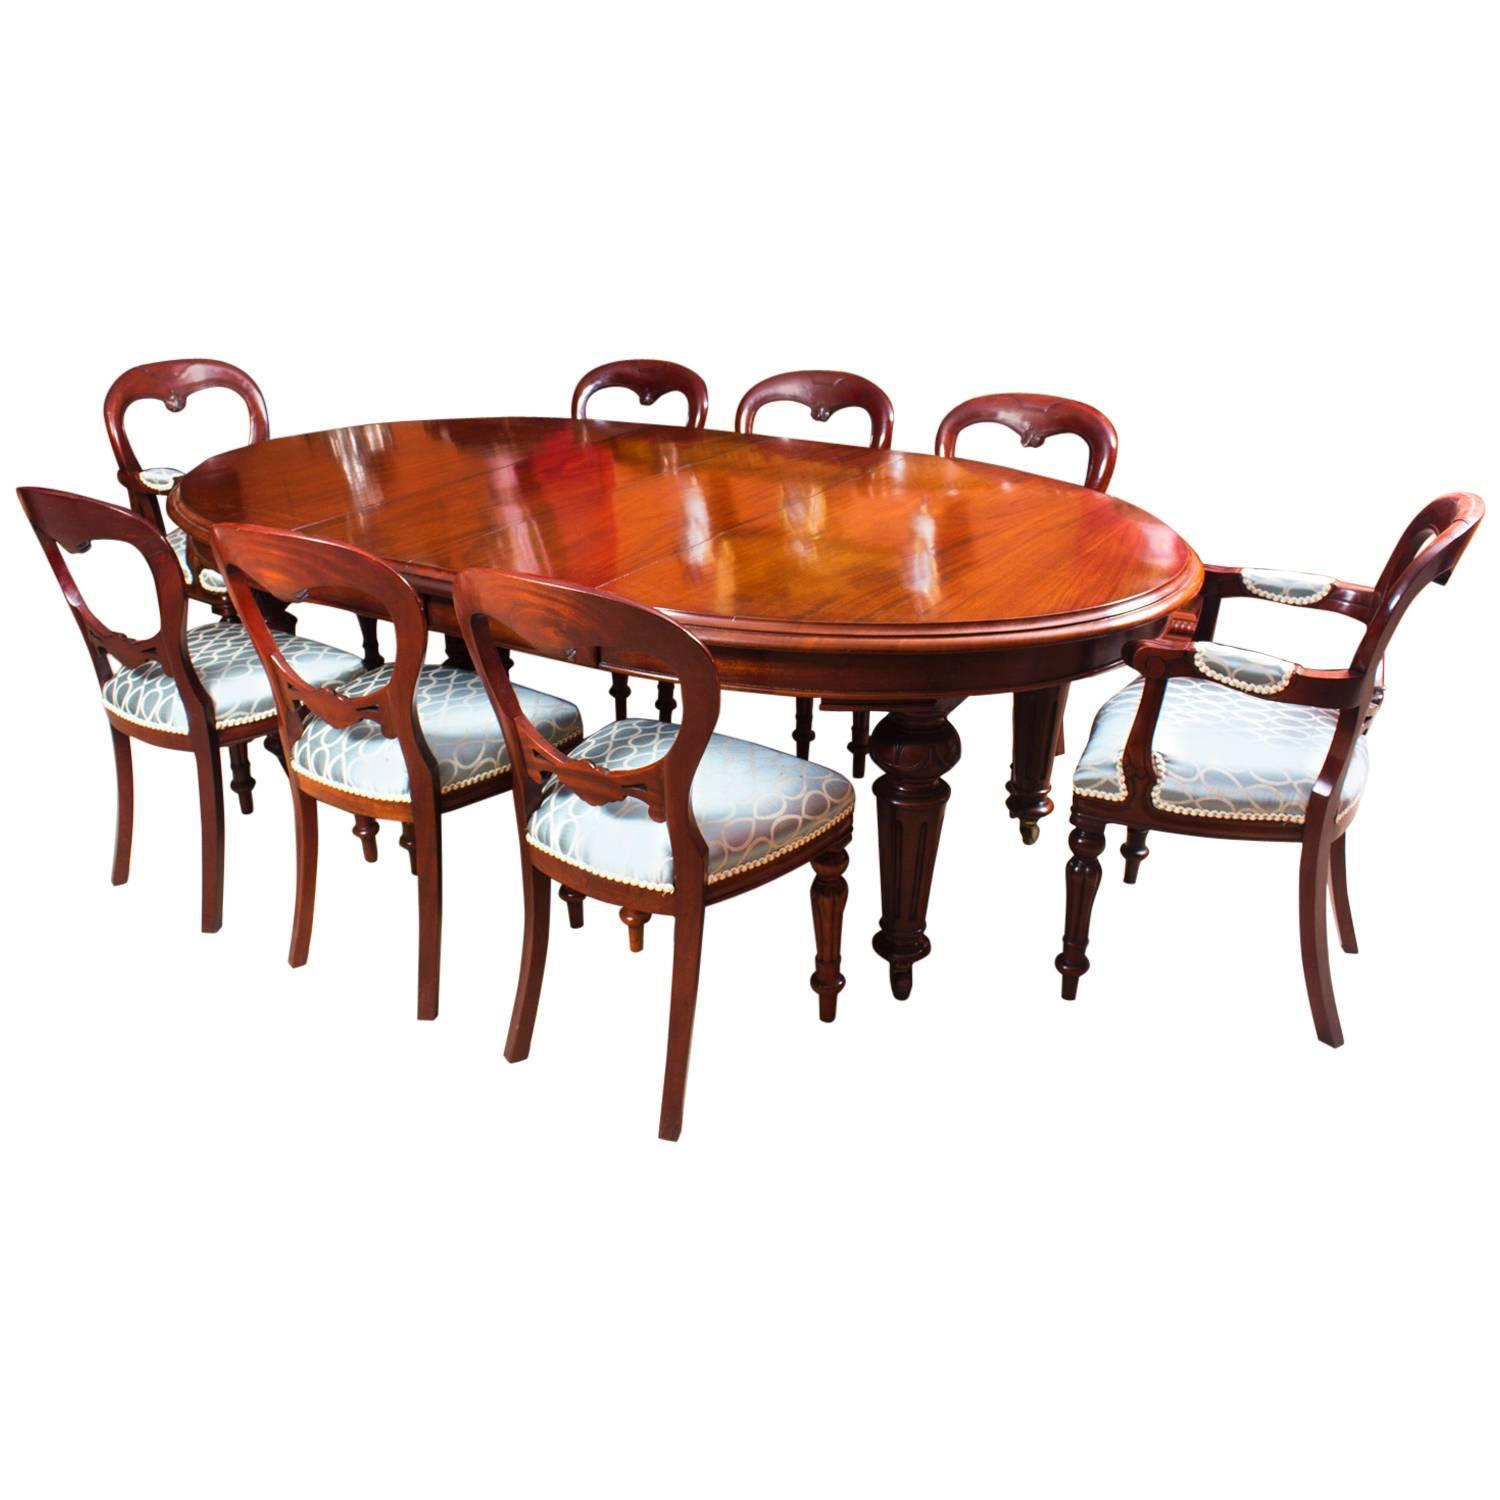 Antique Victorian Oval Dining Table and Eight Chairs, circa 1860 at 1stdibs - Antique Victorian Oval Dining Table And Eight Chairs, Circa 1860 At